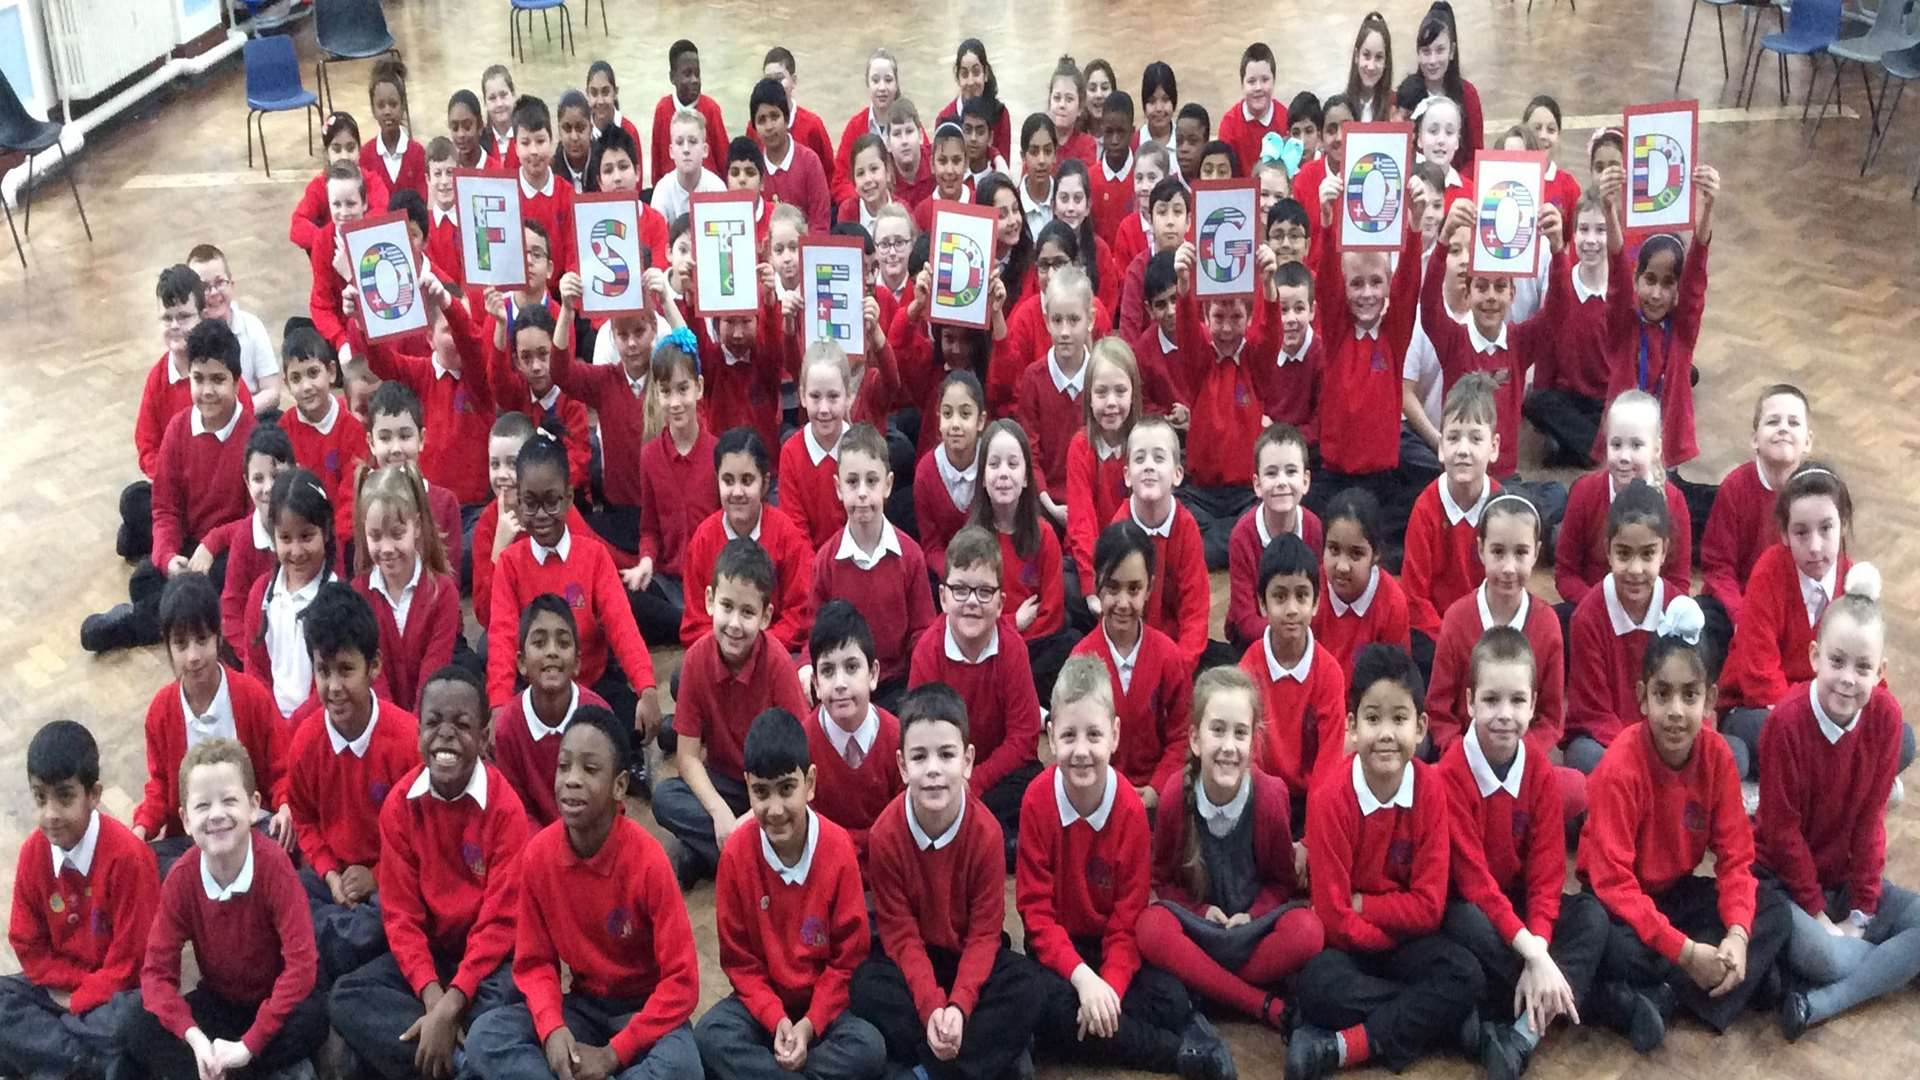 Chantry Community Academy in Gravesend gets good Ofsted report